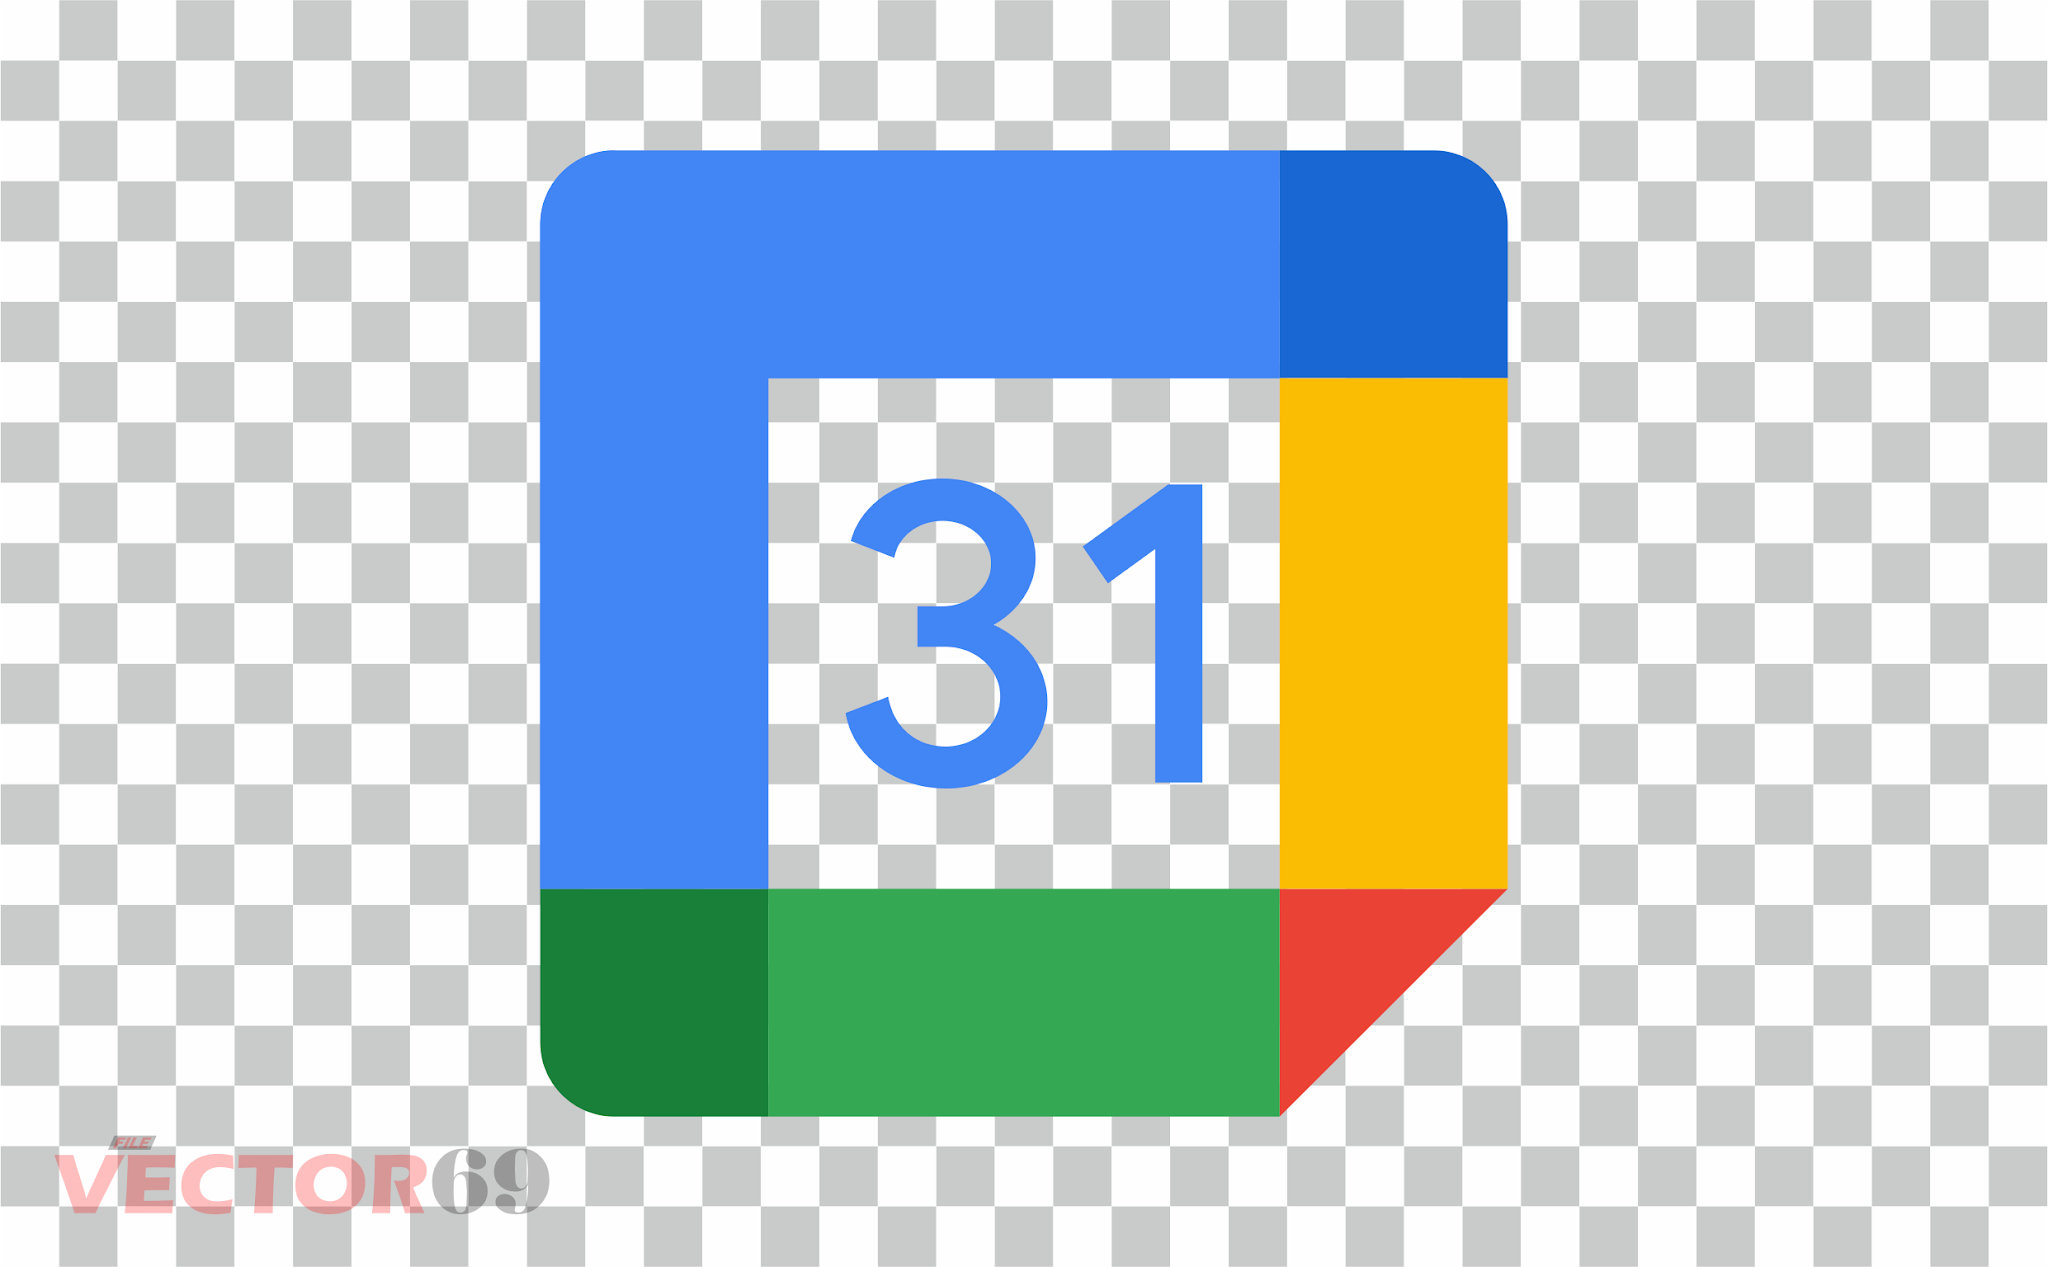 Google Calendar New 2020 Logo - Download Vector File PNG (Portable Network Graphics)